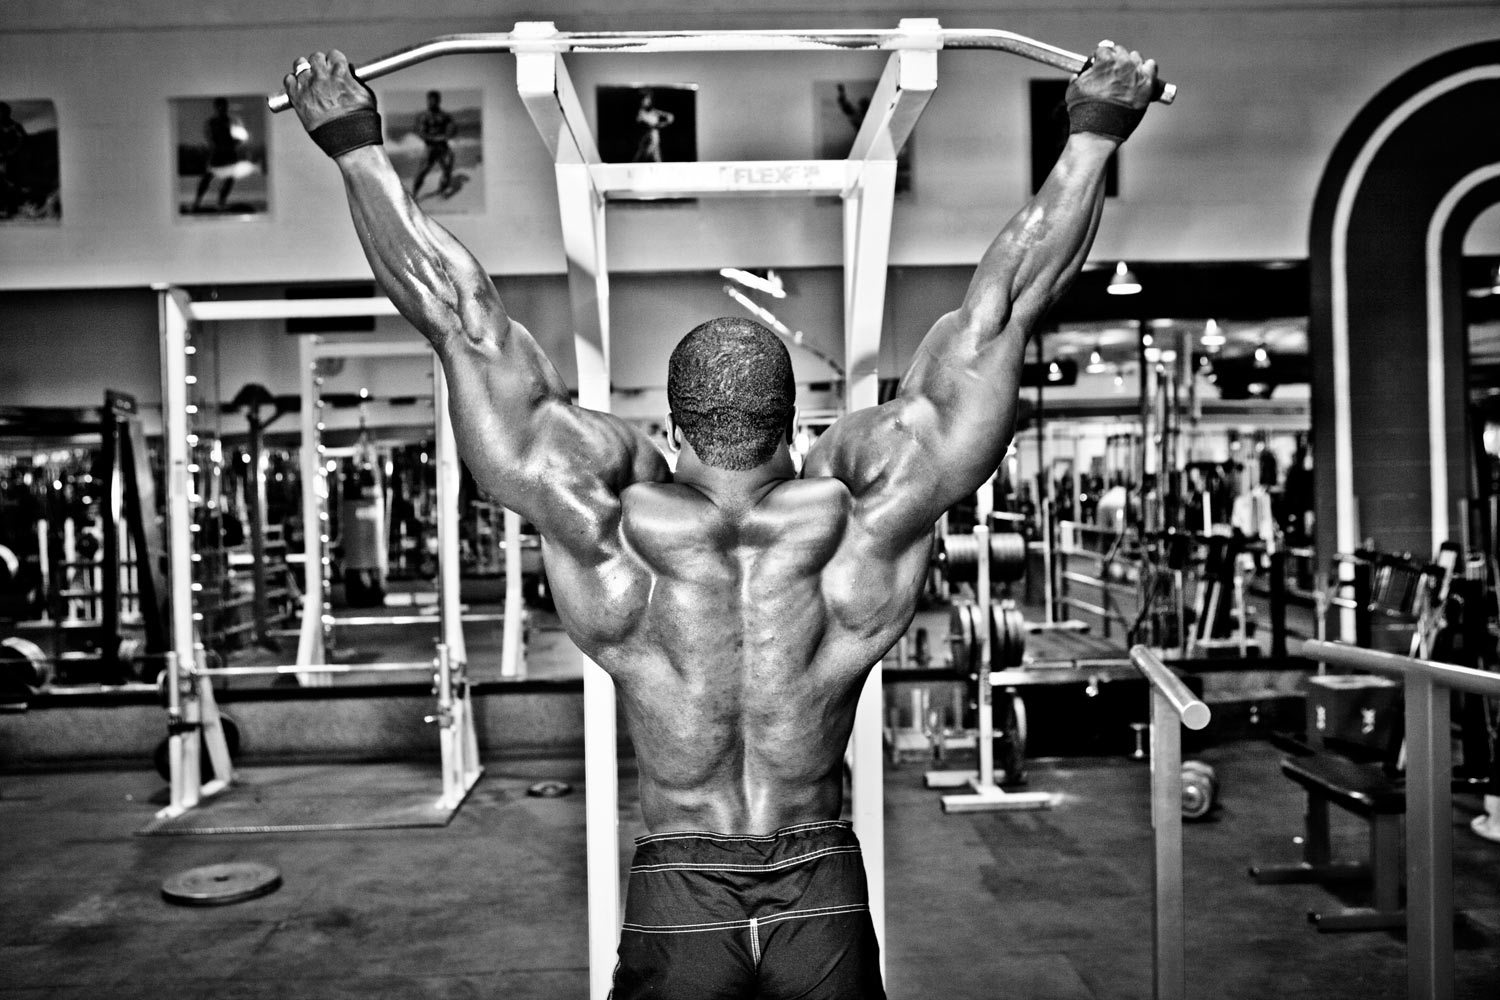 brandon_curry_golds_gym image